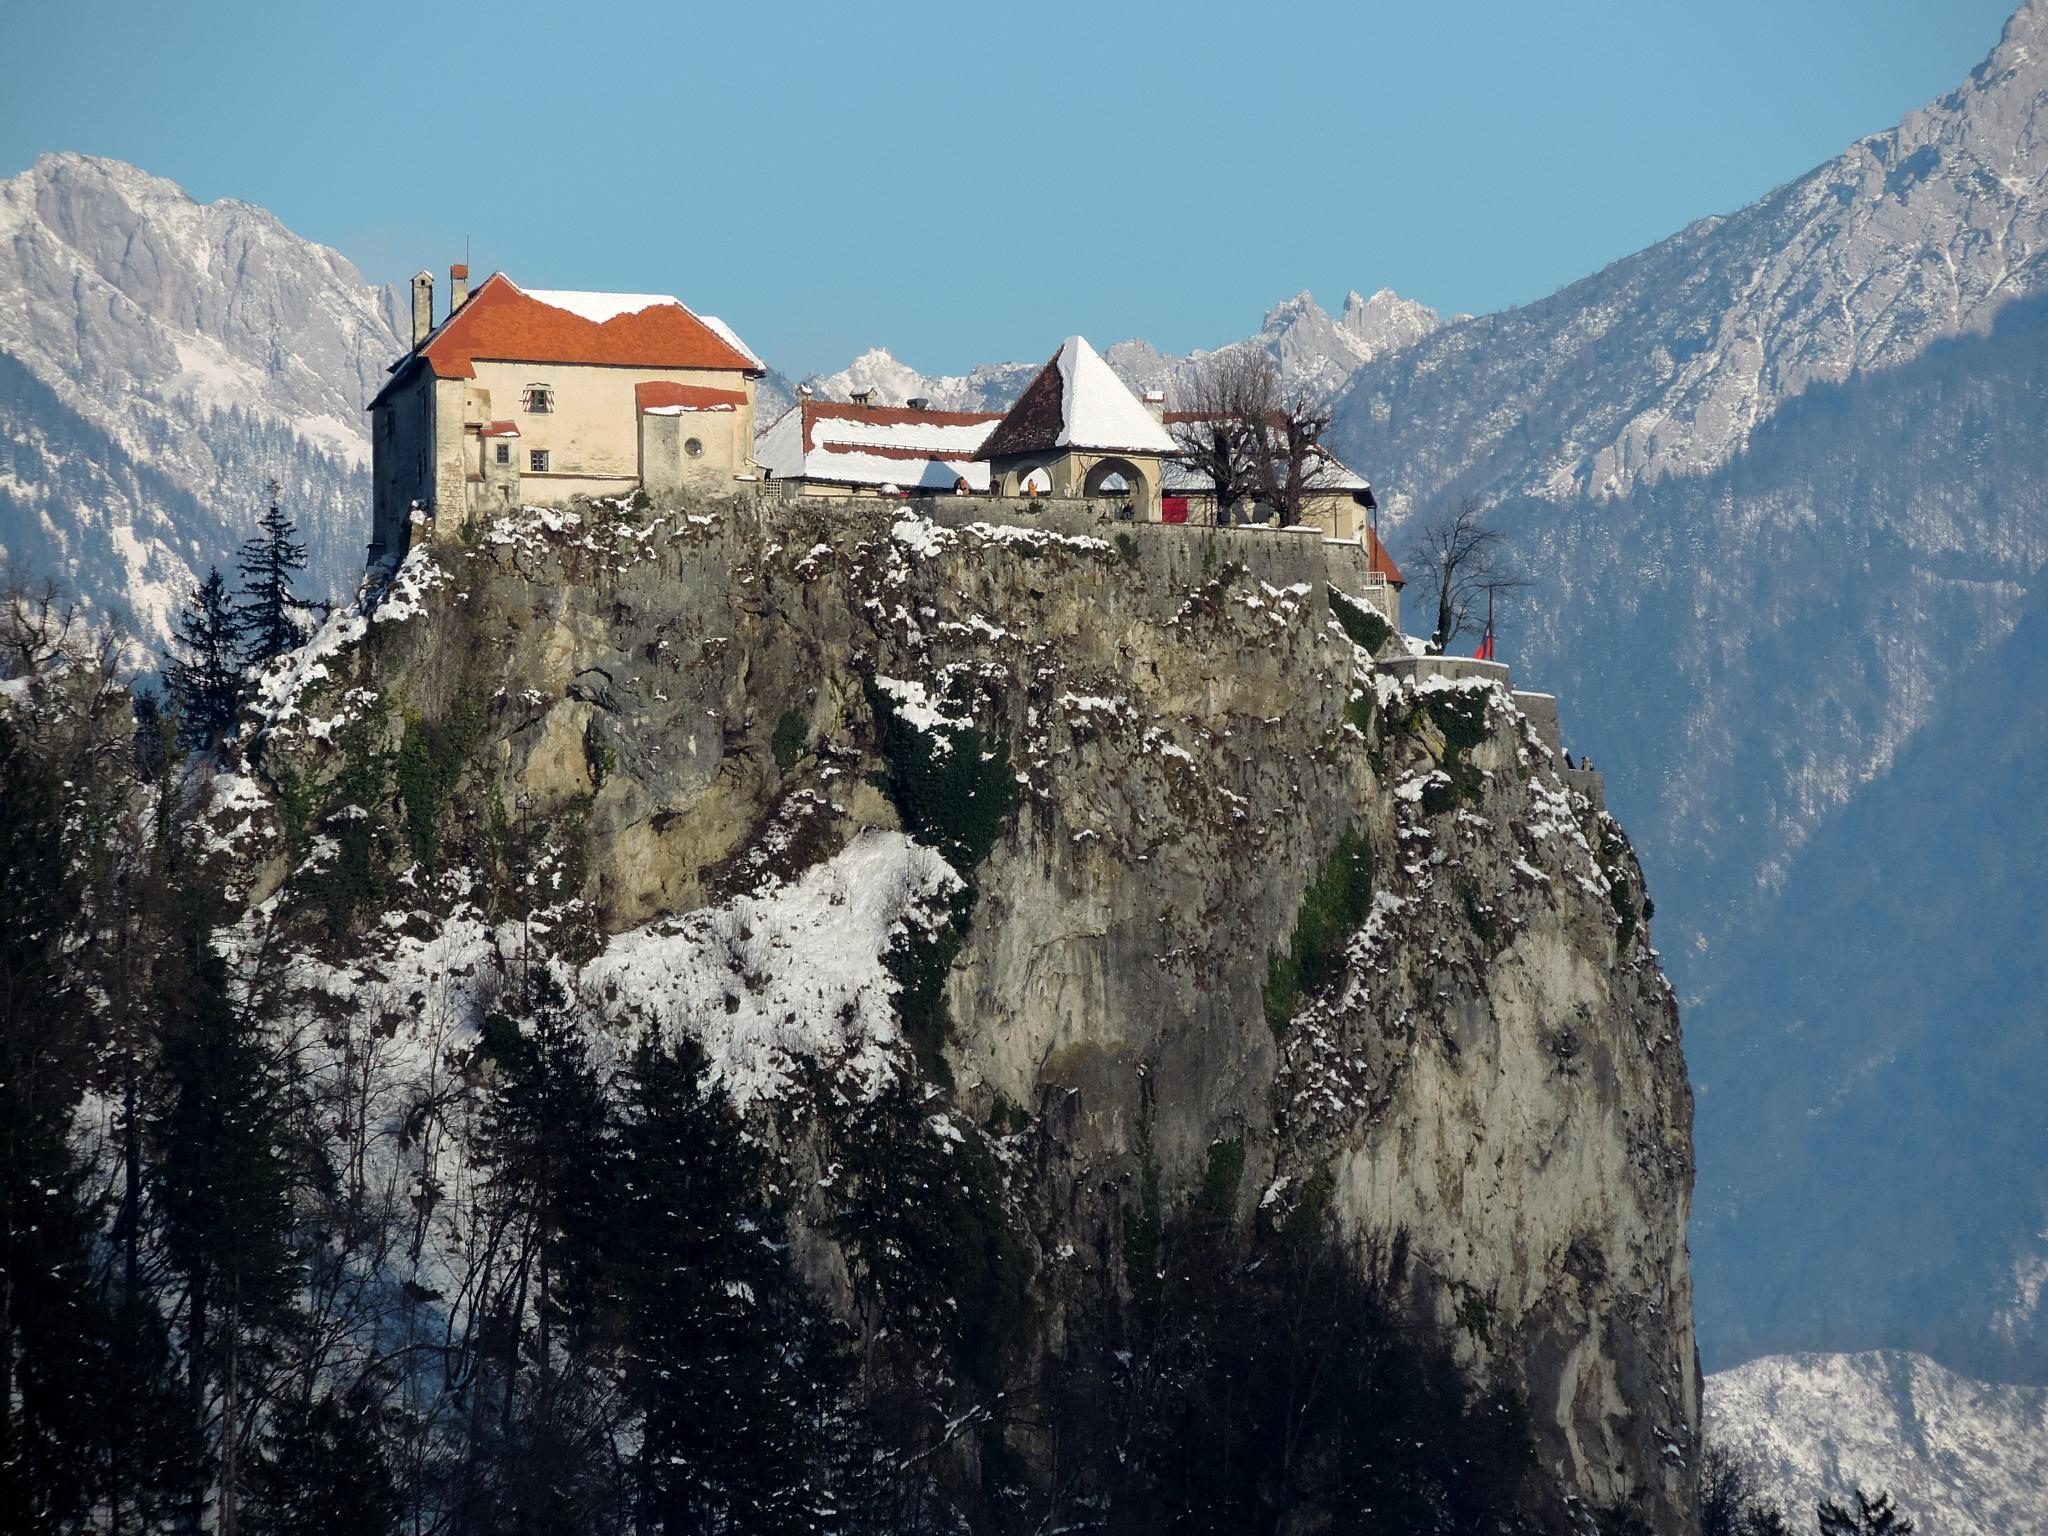 Cold morning in Bled by Egon Cokan